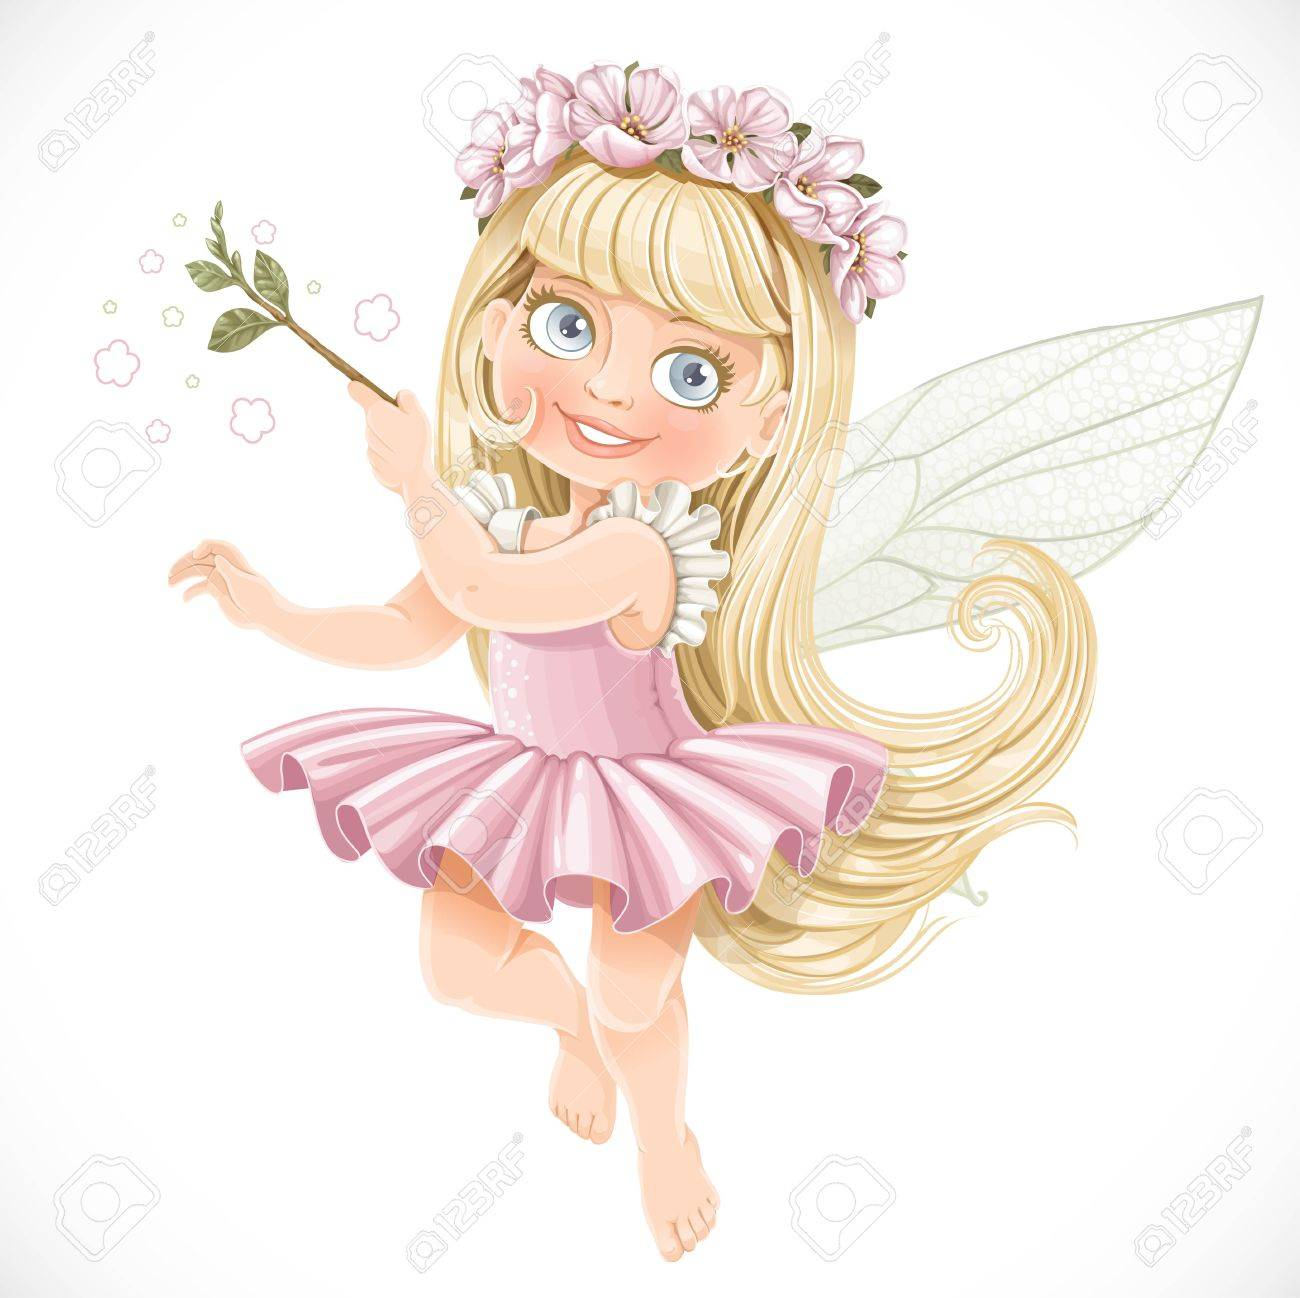 c6348dbe9 Fairy Stock Photos And Images - 123RF